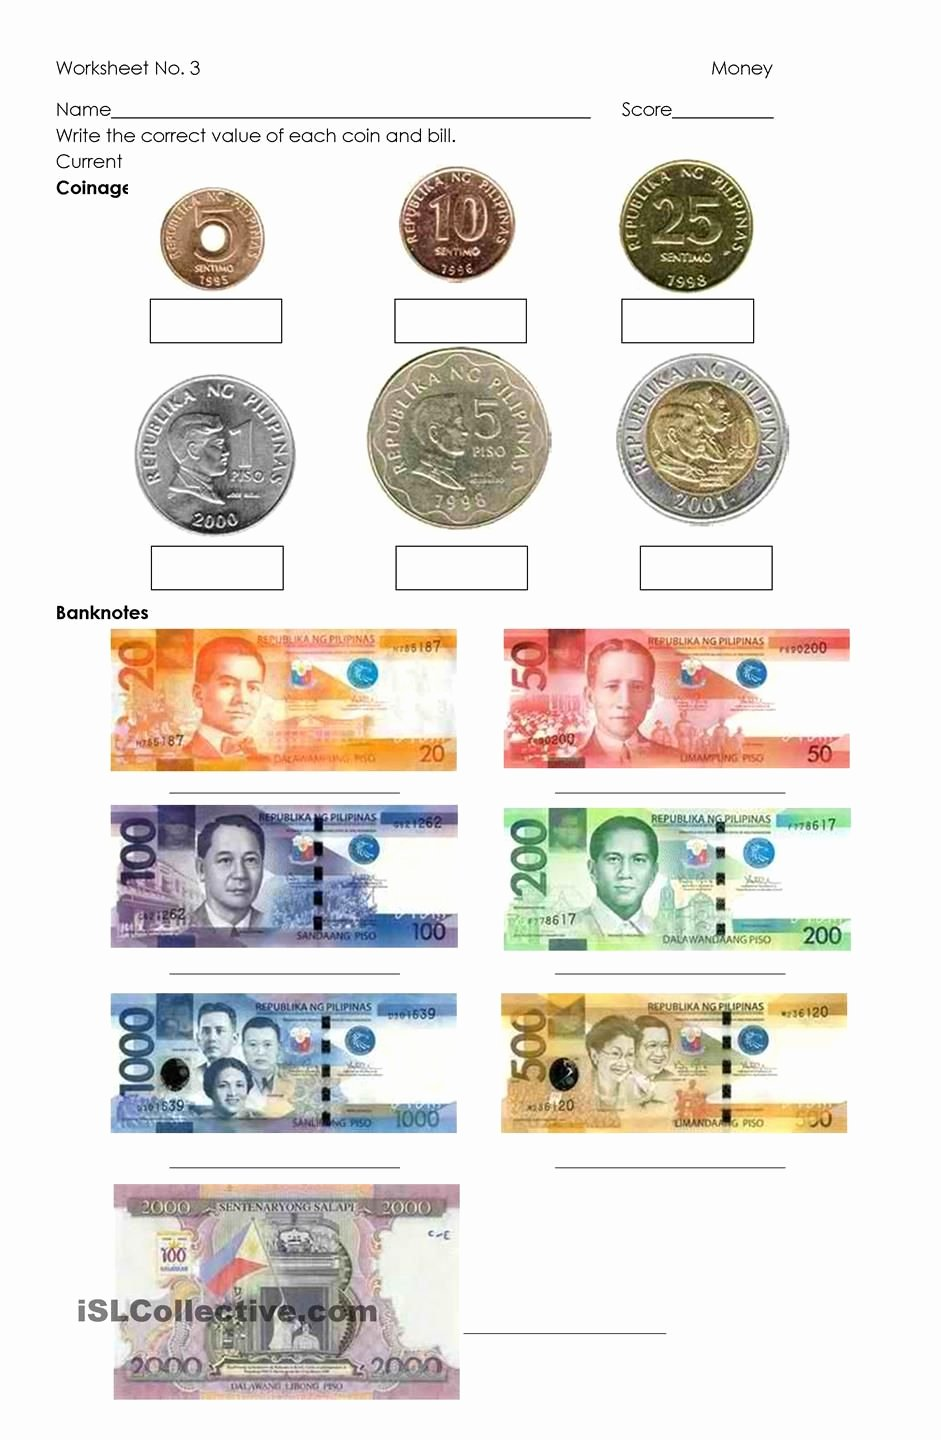 Philippine Money Worksheets for Preschoolers Kids Money Philippine Coins and Bills